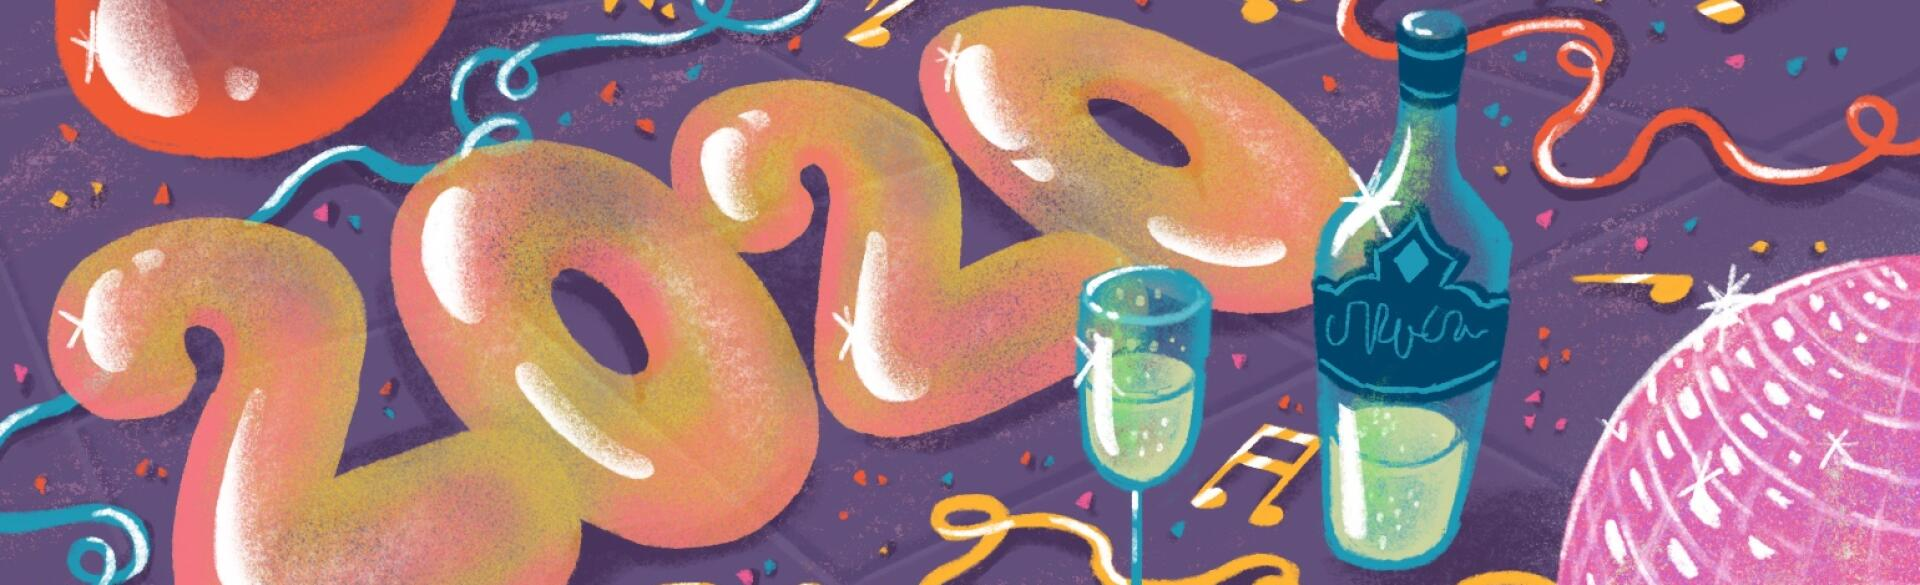 illustration of new years balloons streamers champagne for spotify playlist by charlot kristensen